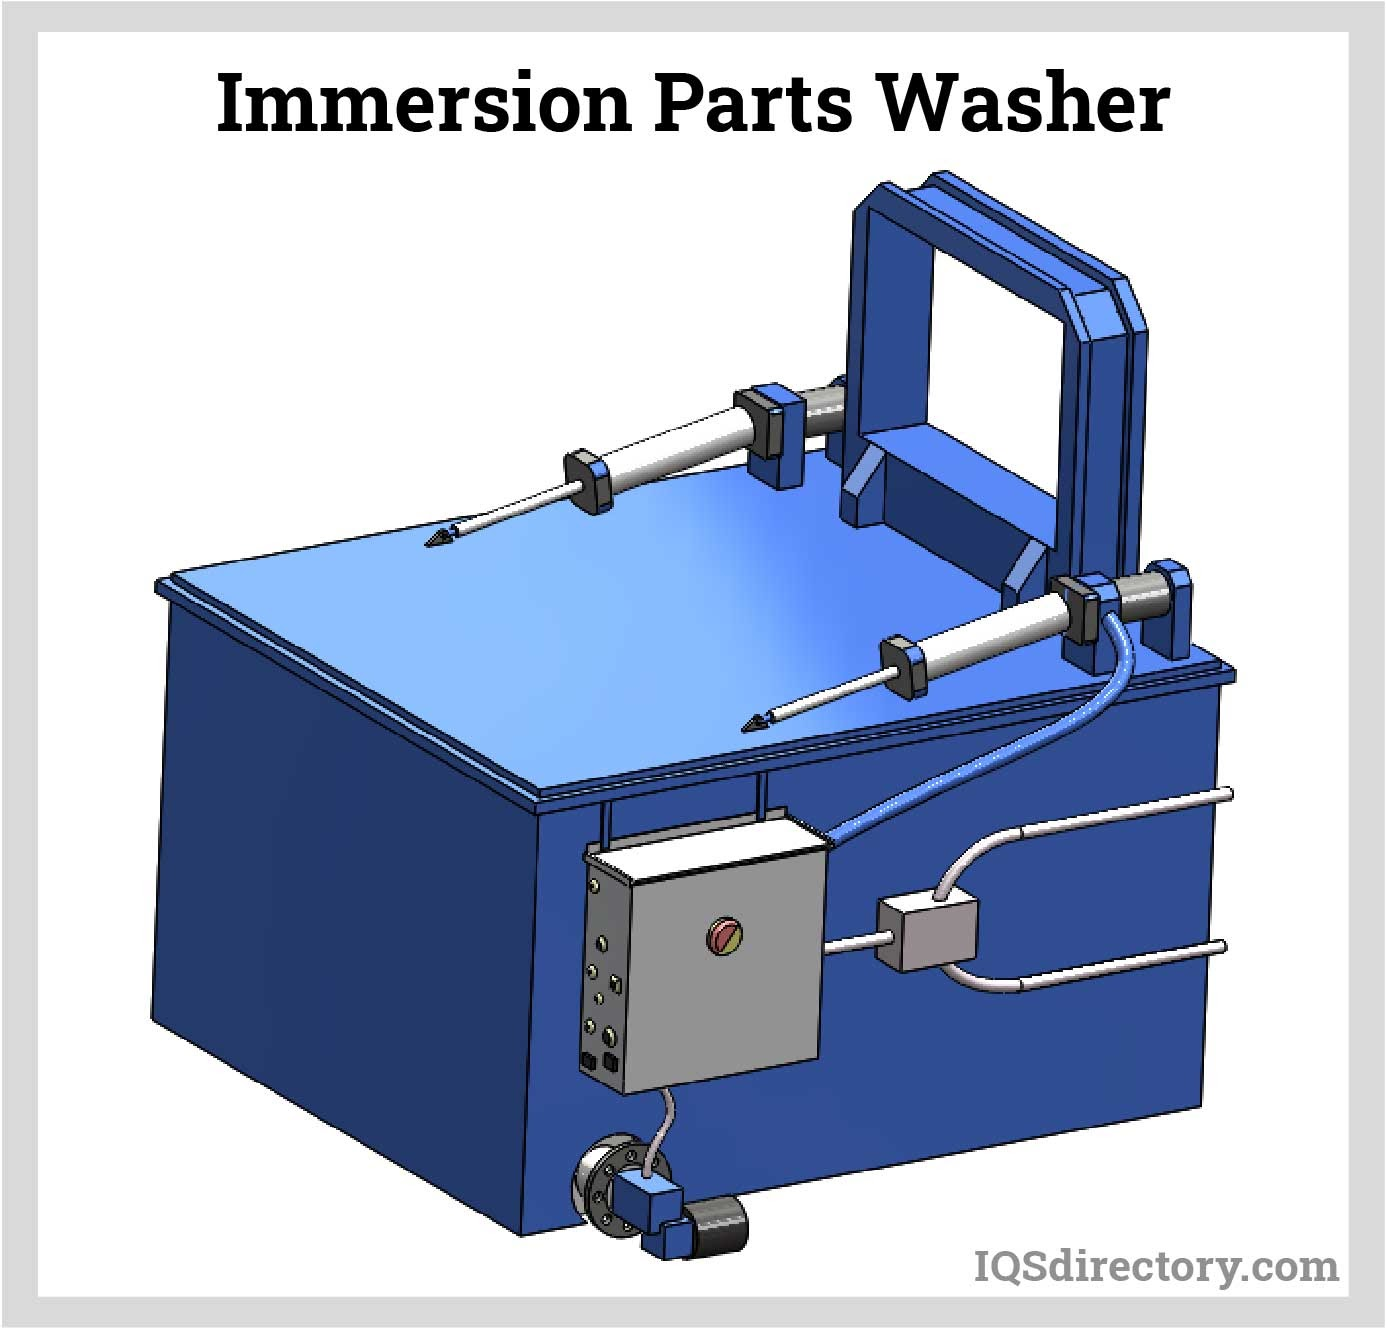 Immersion Parts Washer